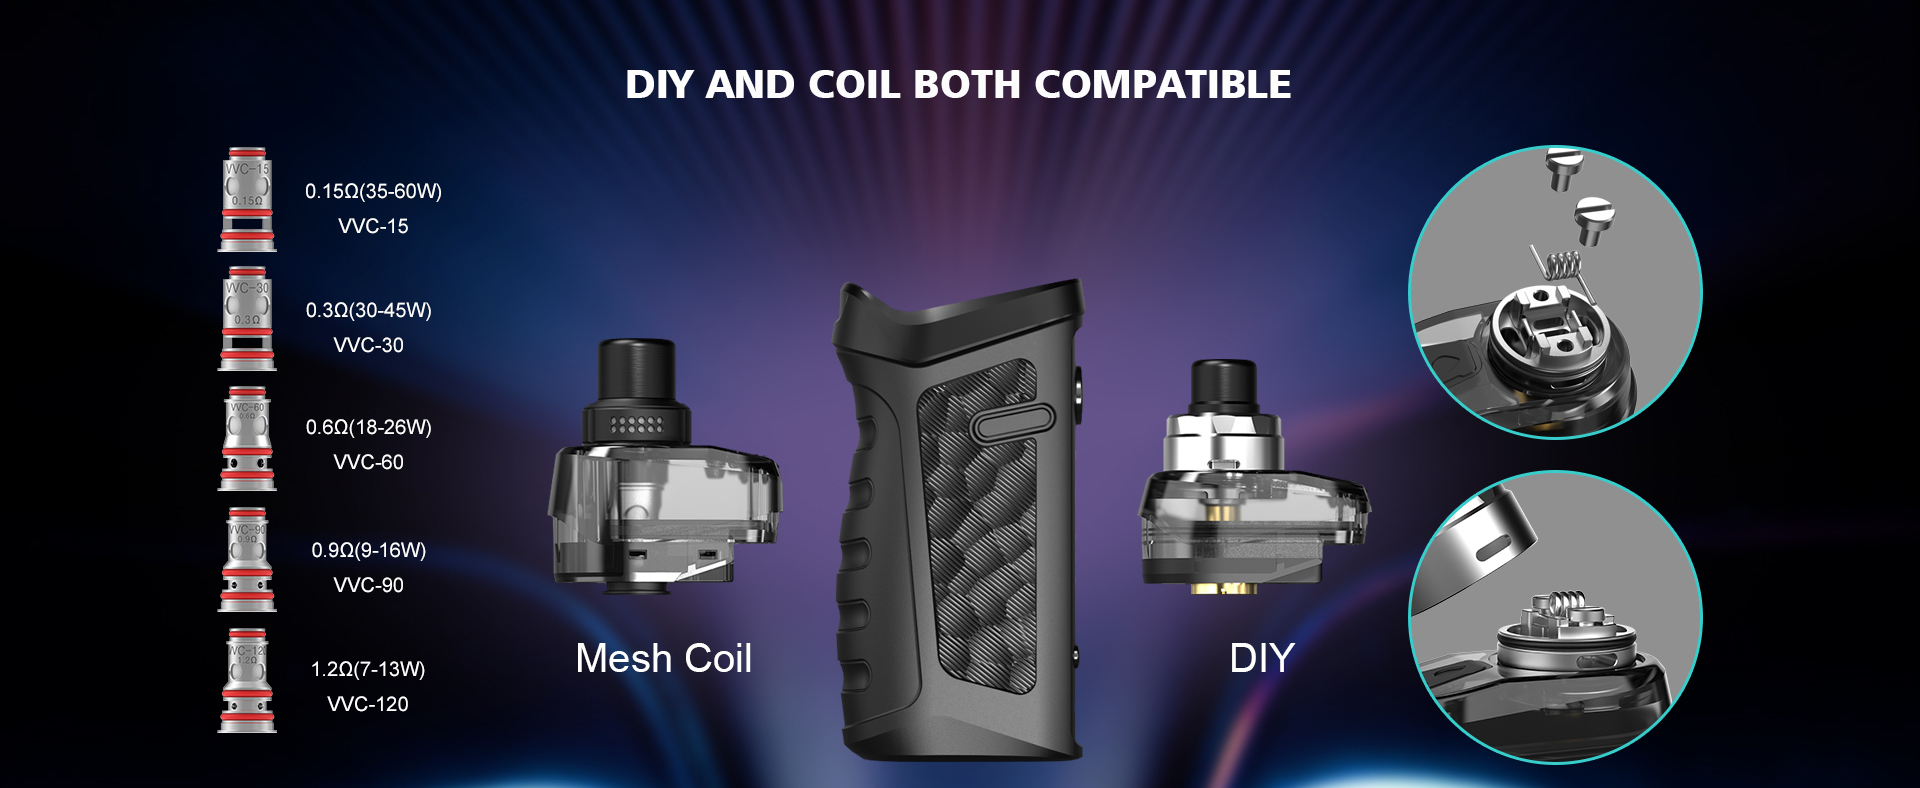 A Jackaroo device surrounded by its Vandy Vape coils and pods.